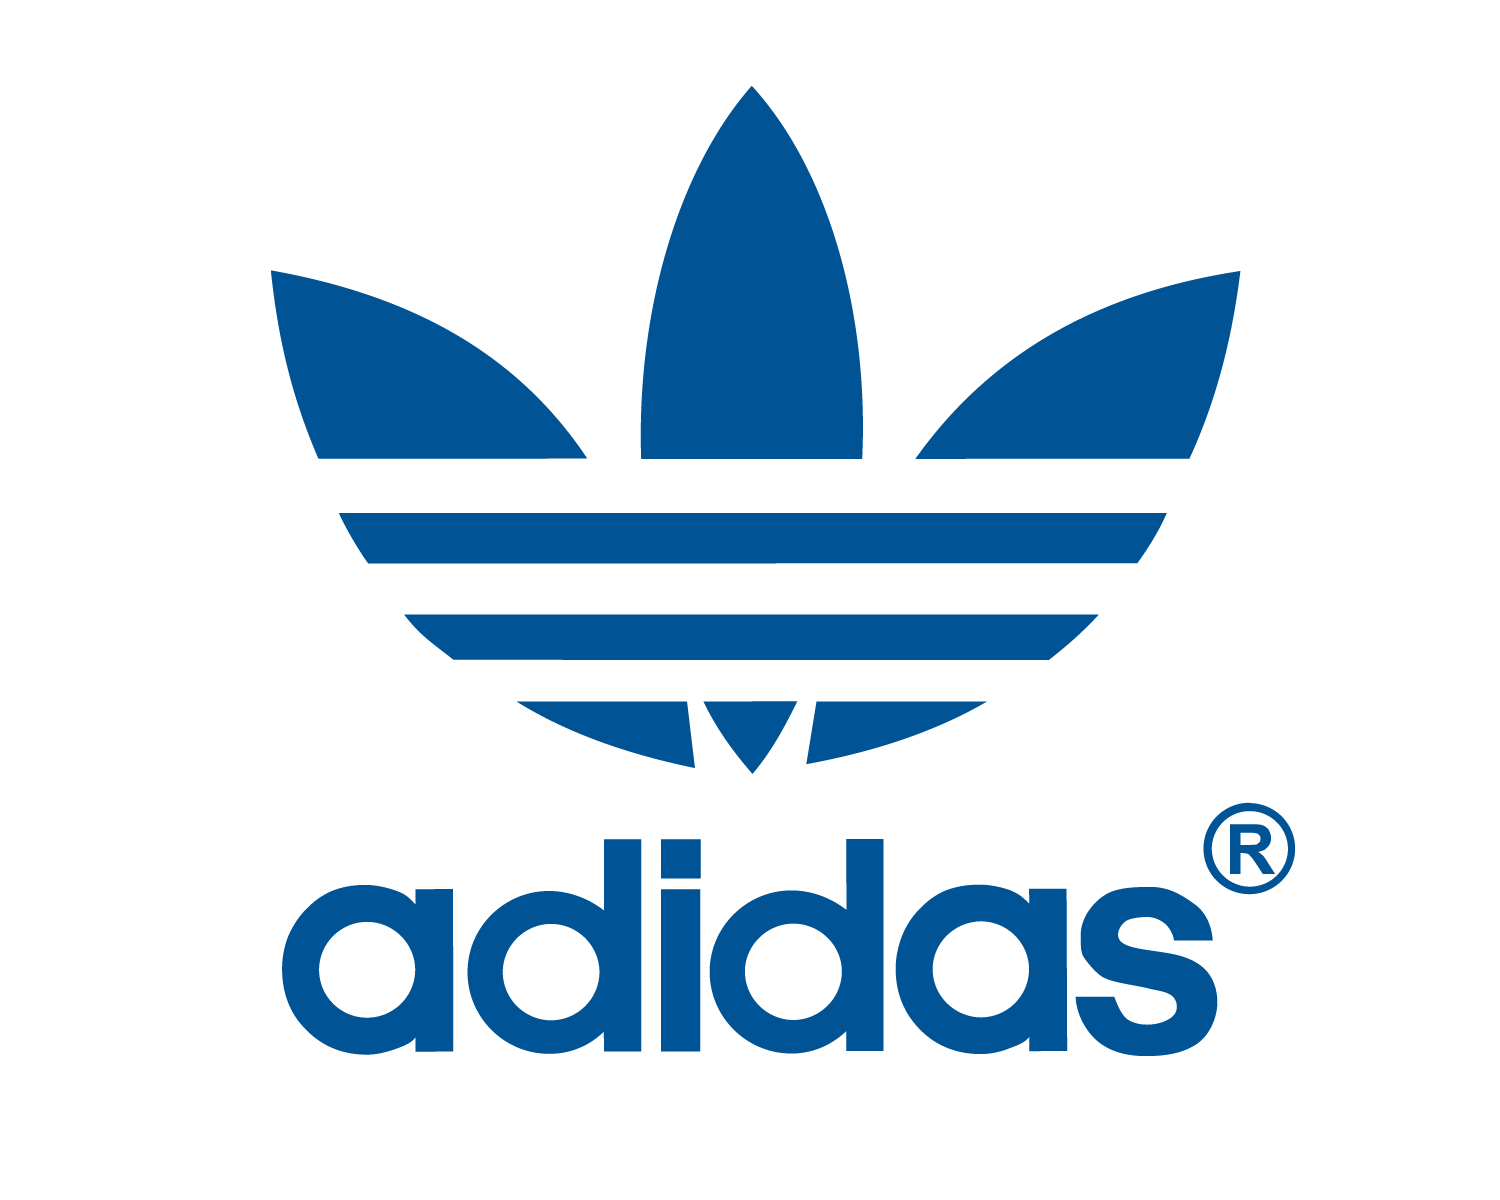 Android letters logo png transparent background. Adidas famous logos